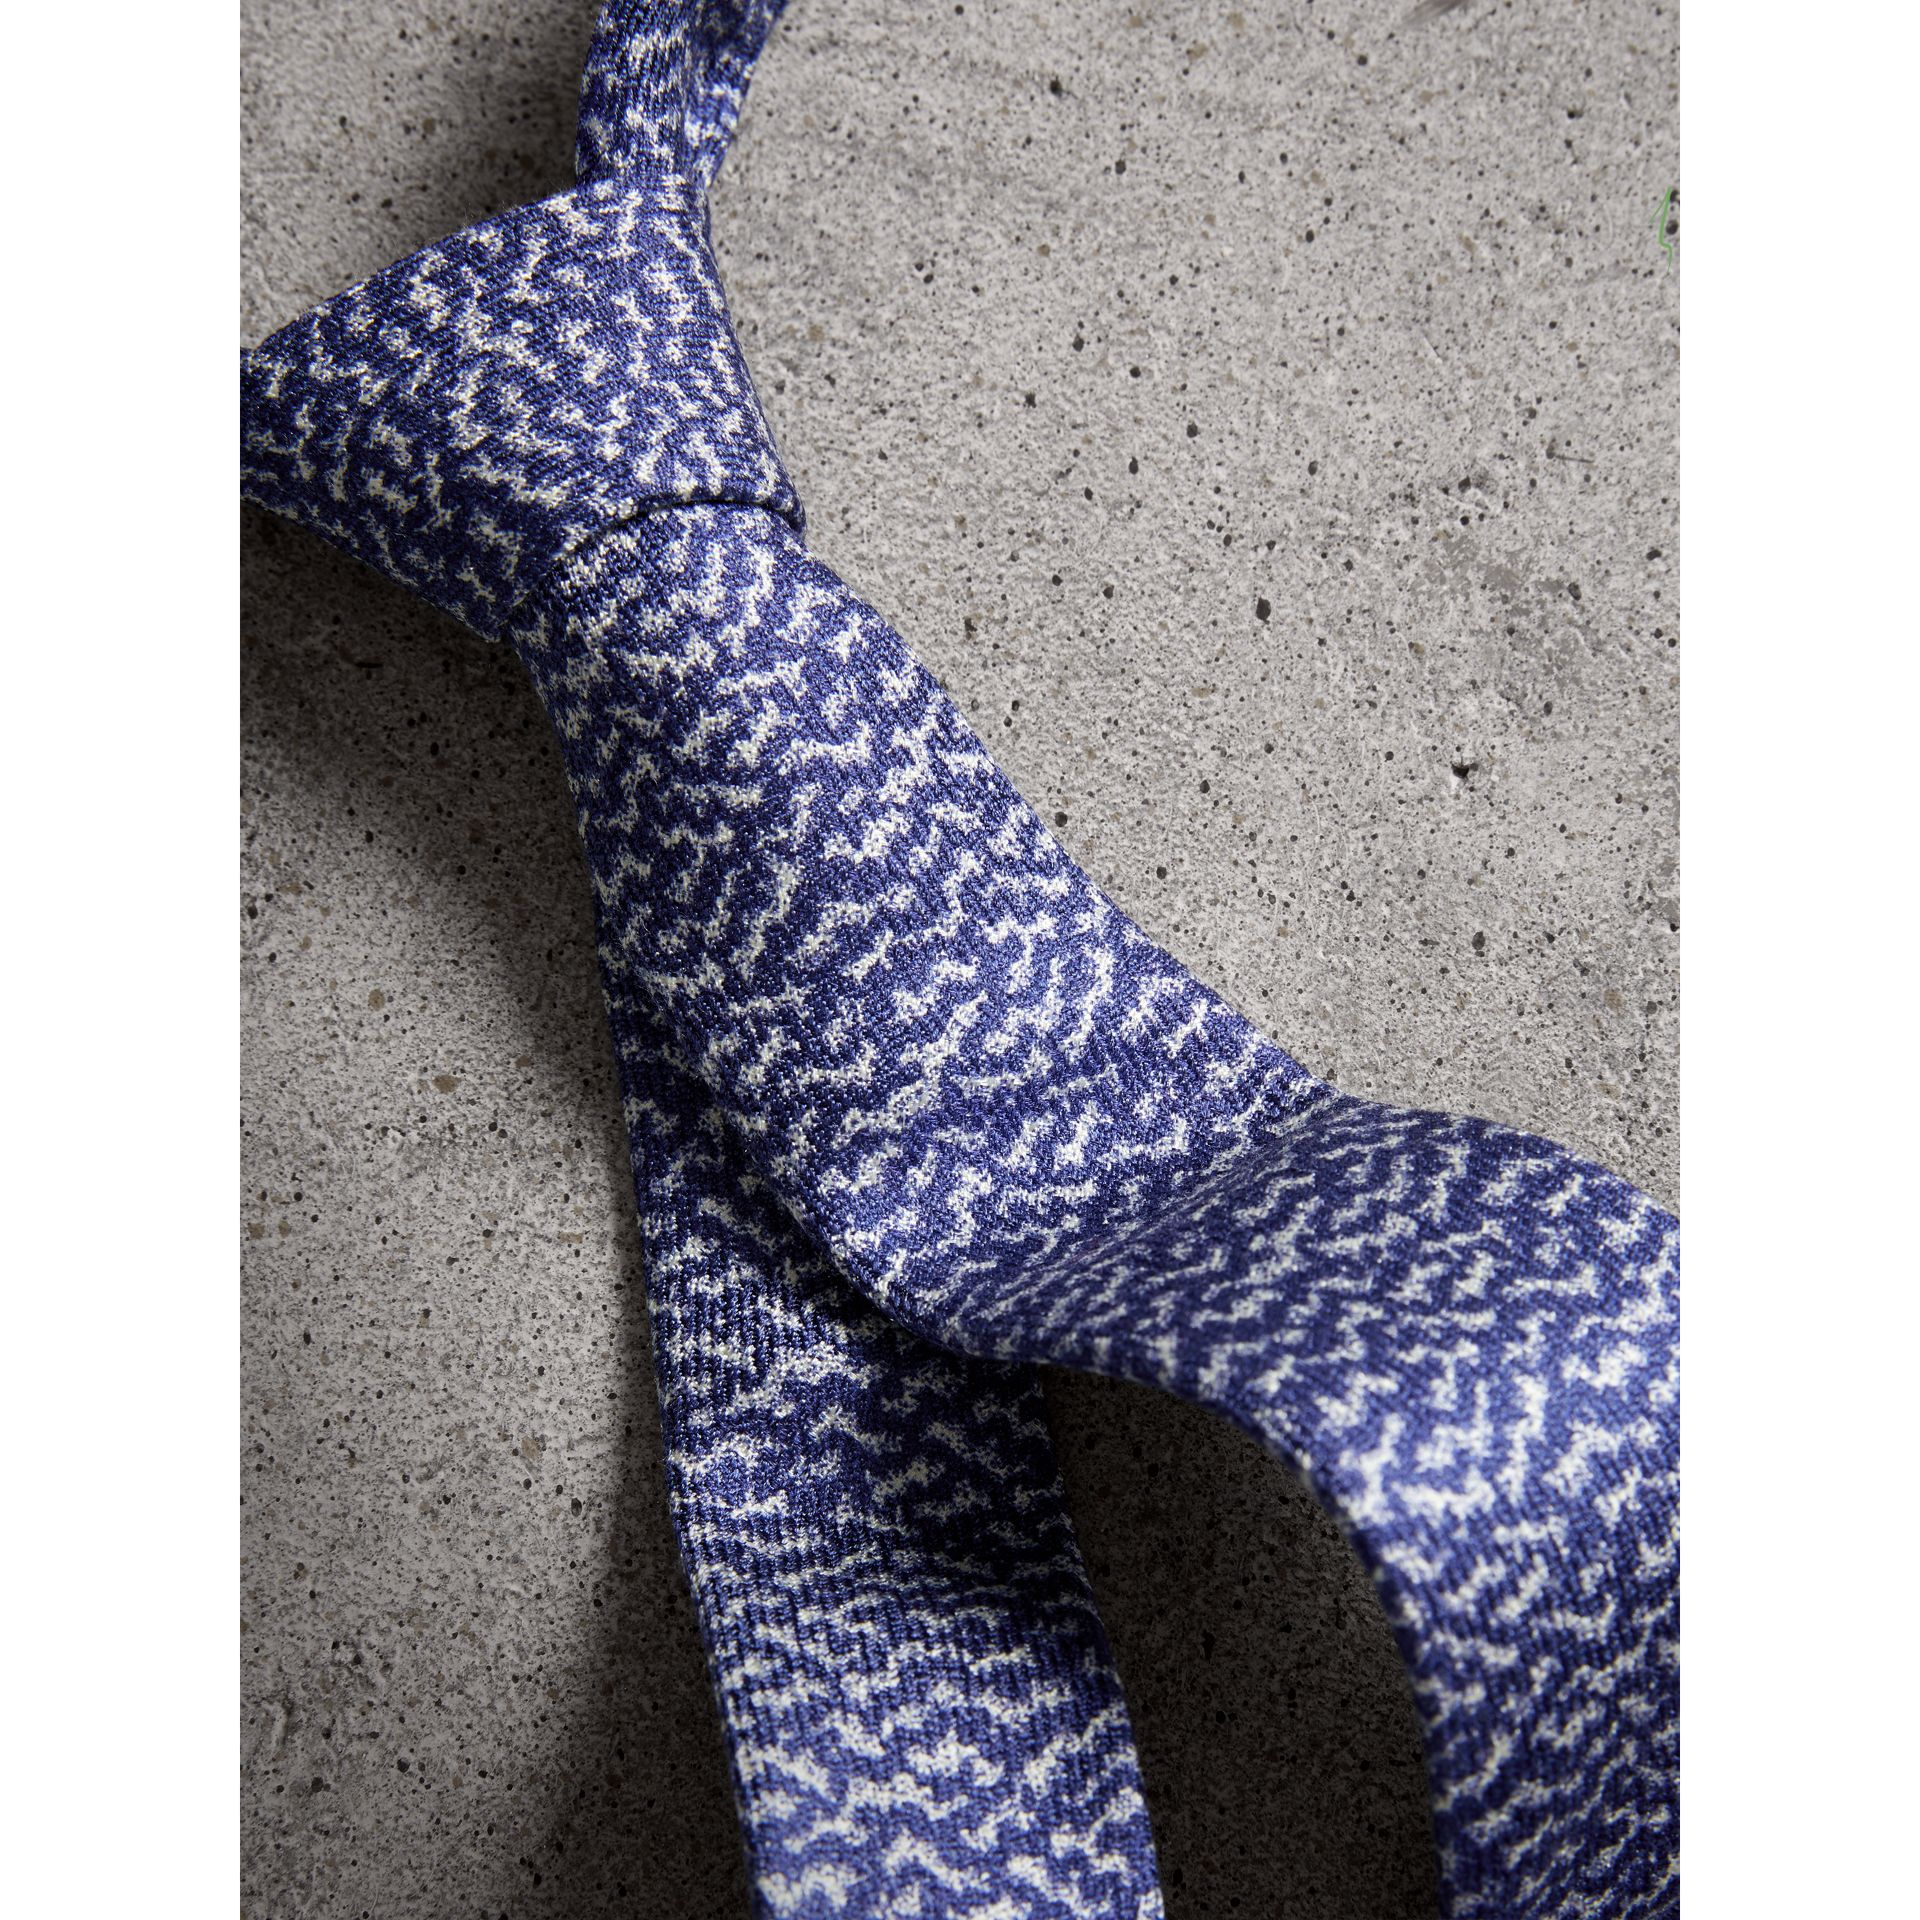 Slim Cut Ripple Print Silk Tie in Cobalt Blue - Men | Burberry - gallery image 1